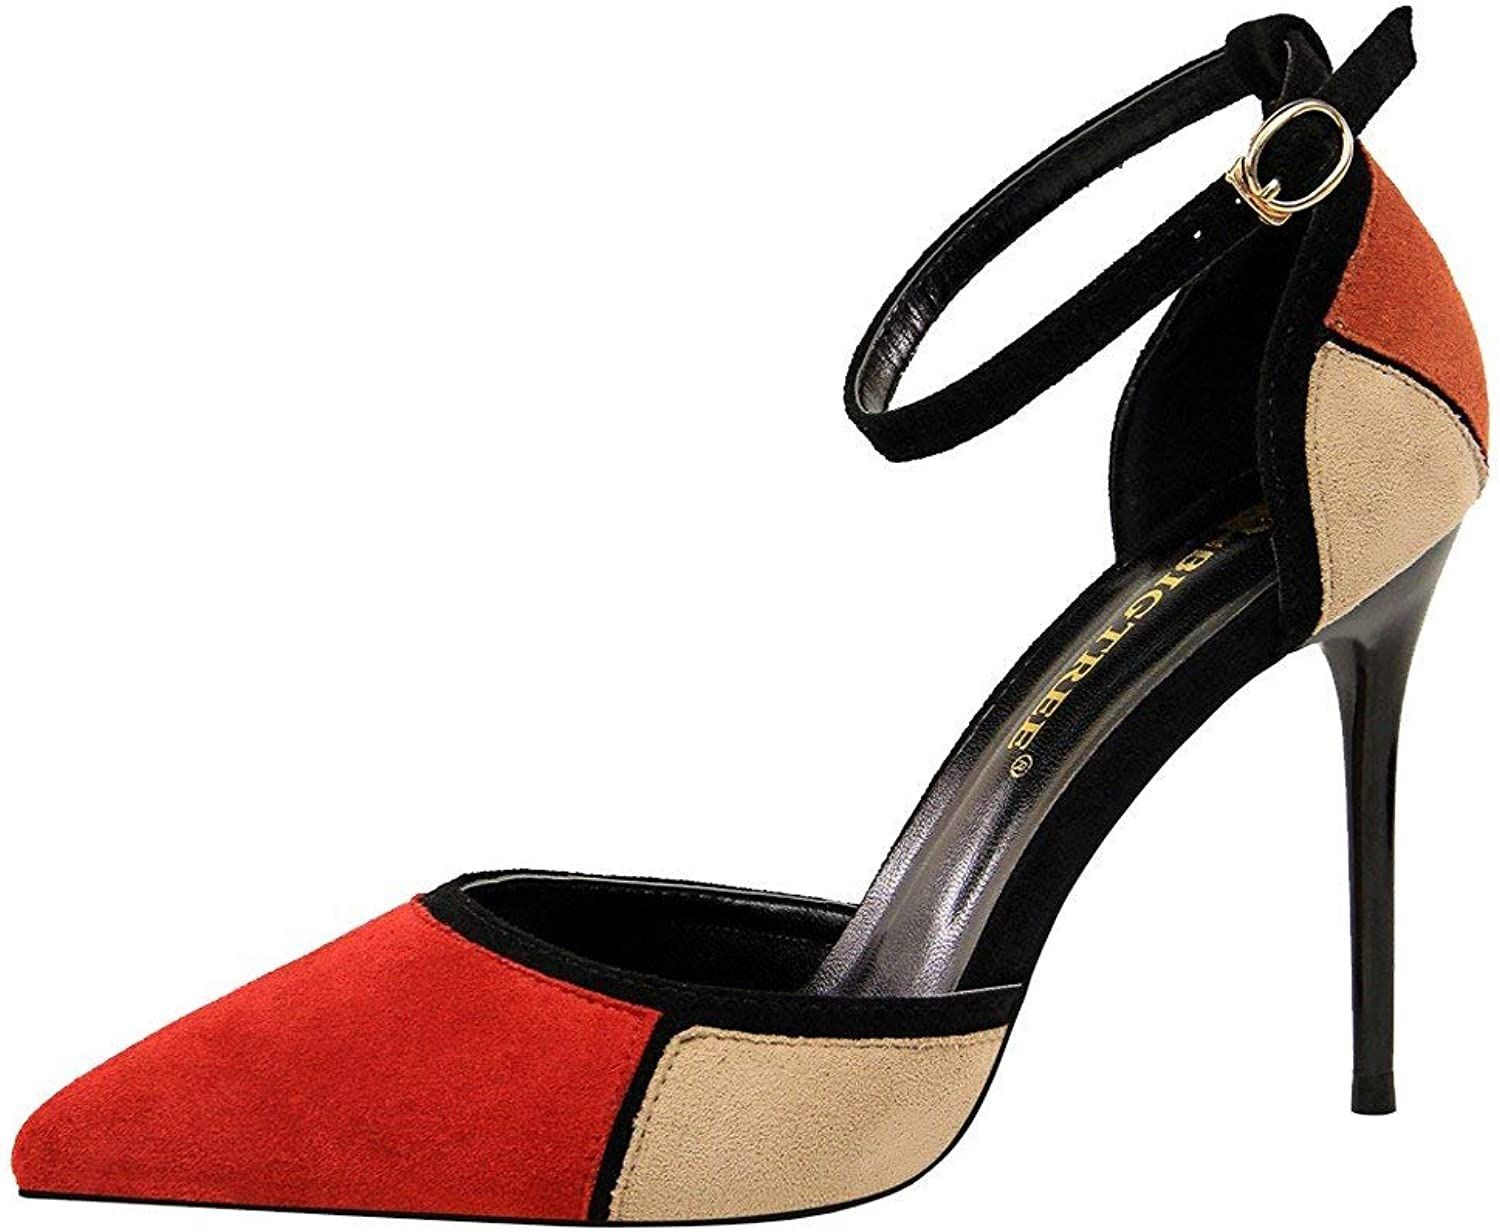 Gcanwea Women's Multicolor Pointed Toe High Heel D'Orsay shoes Fashion Skinny Breathable Comfortable Classic Elegant Sexy Ladies Dress Simple Black+Apricot 7.5 M US shoes